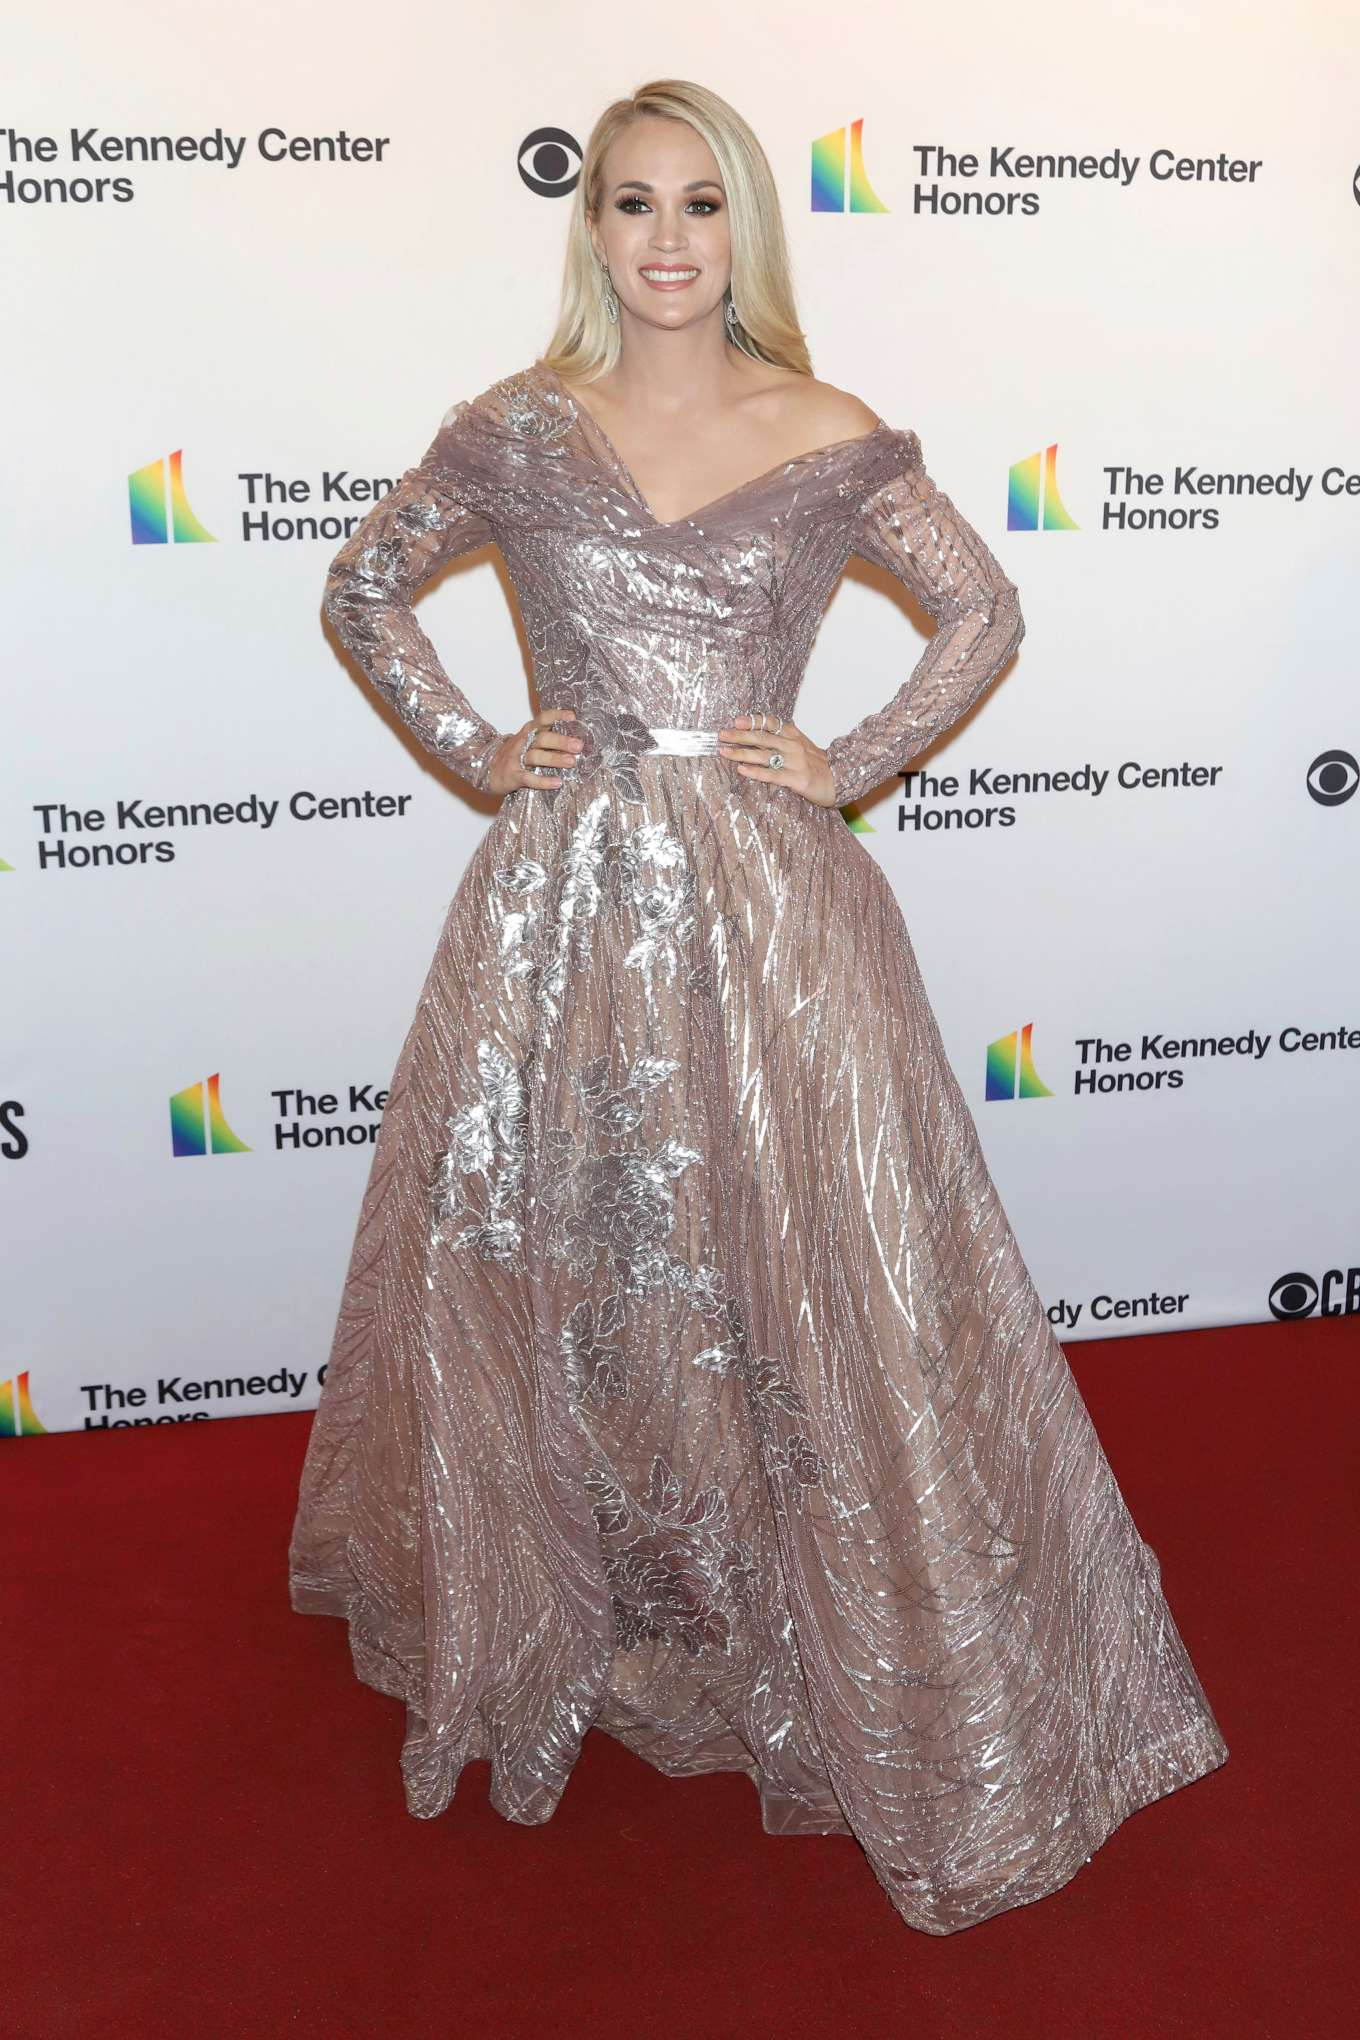 Carrie Underwood - 2019 Kennedy Center Honors at the Kennedy Center in Washington